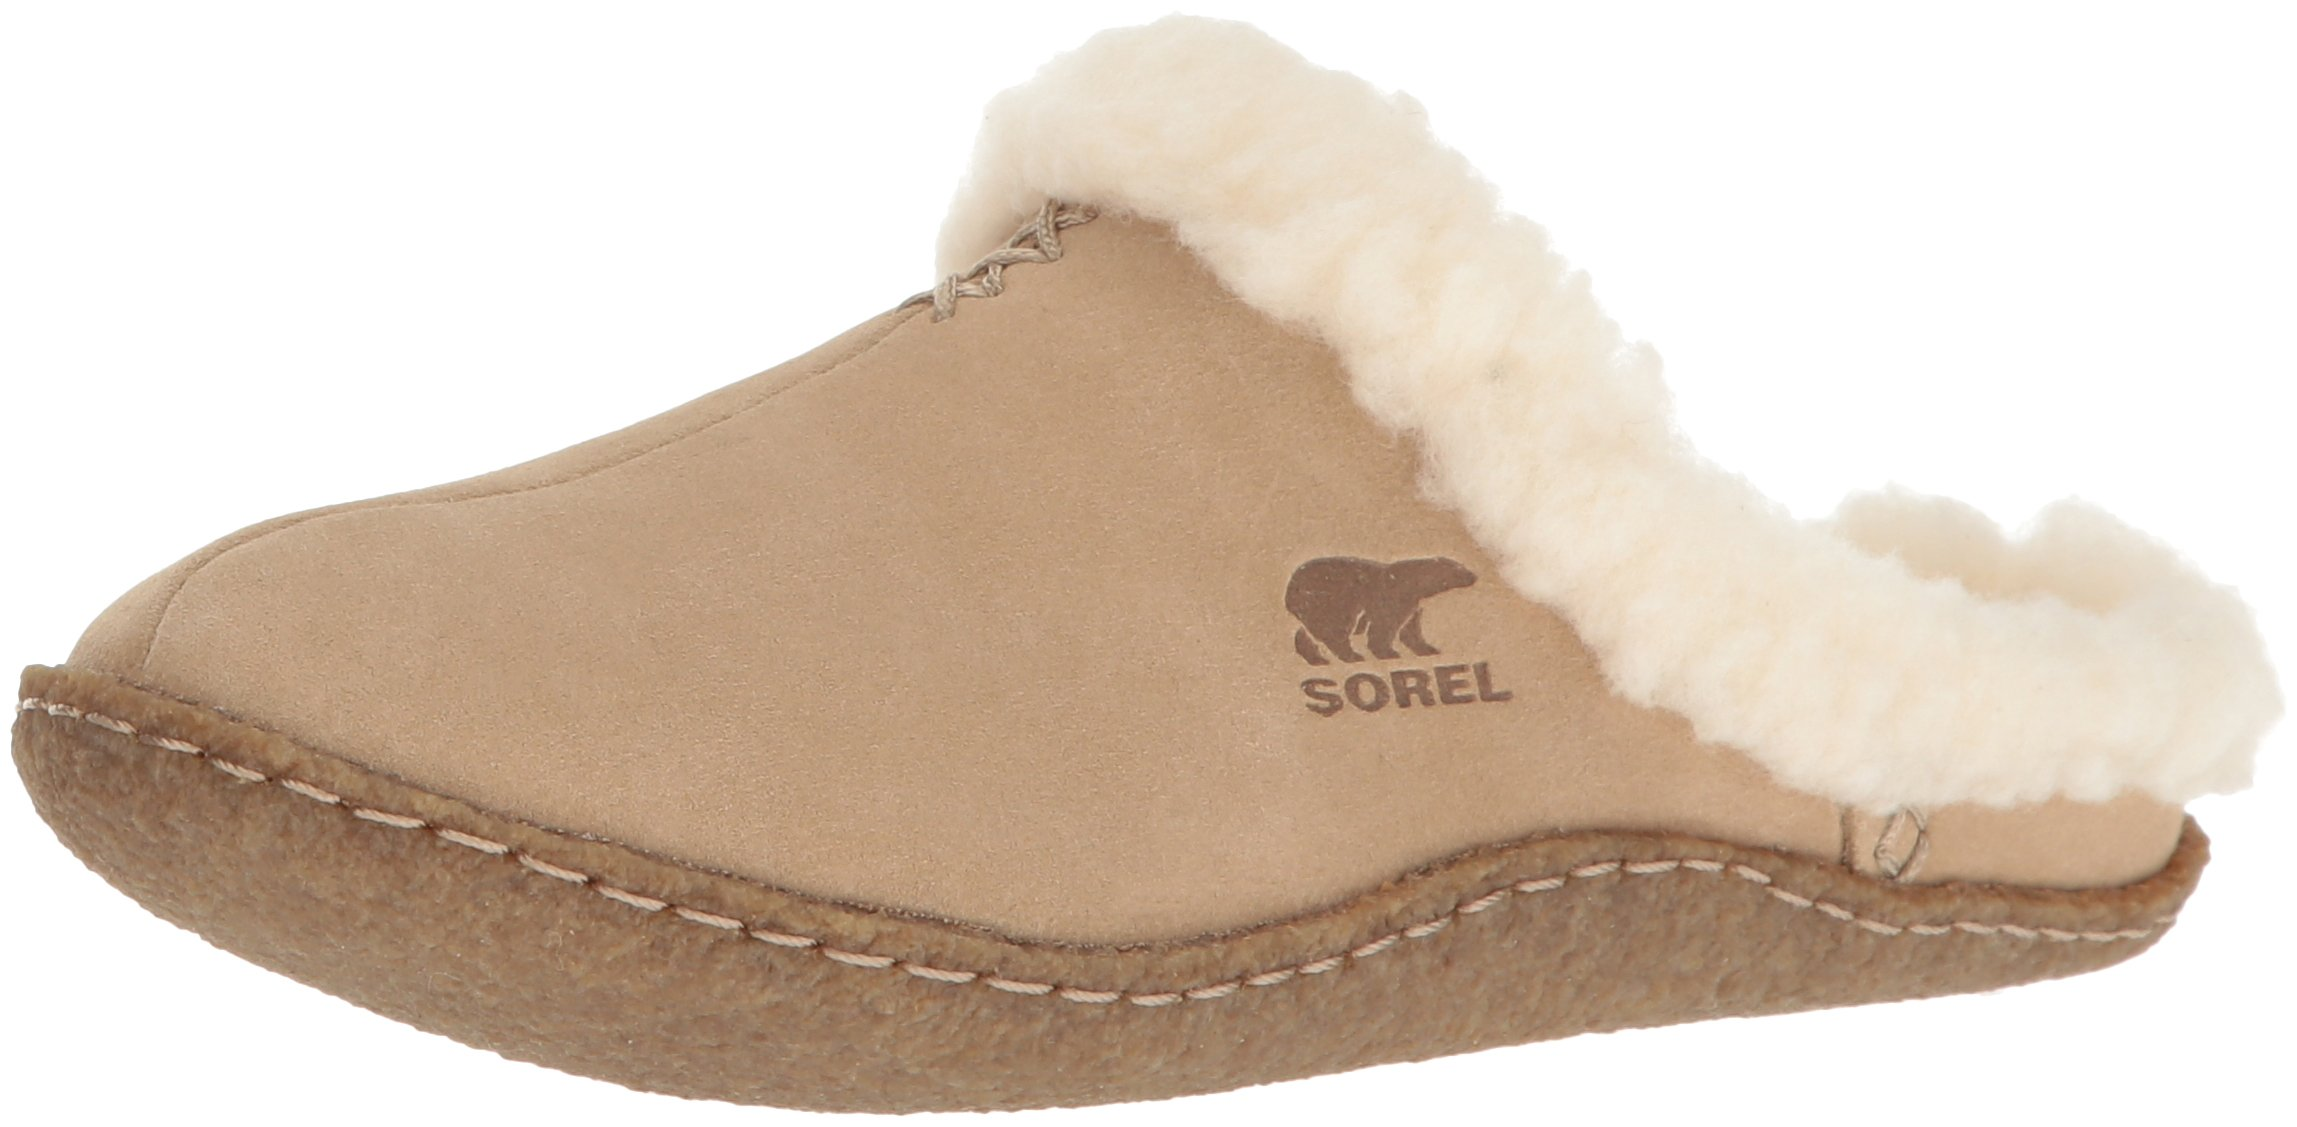 Sorel Women's Nakiska Slide Slipper,Incense,9.5 M US